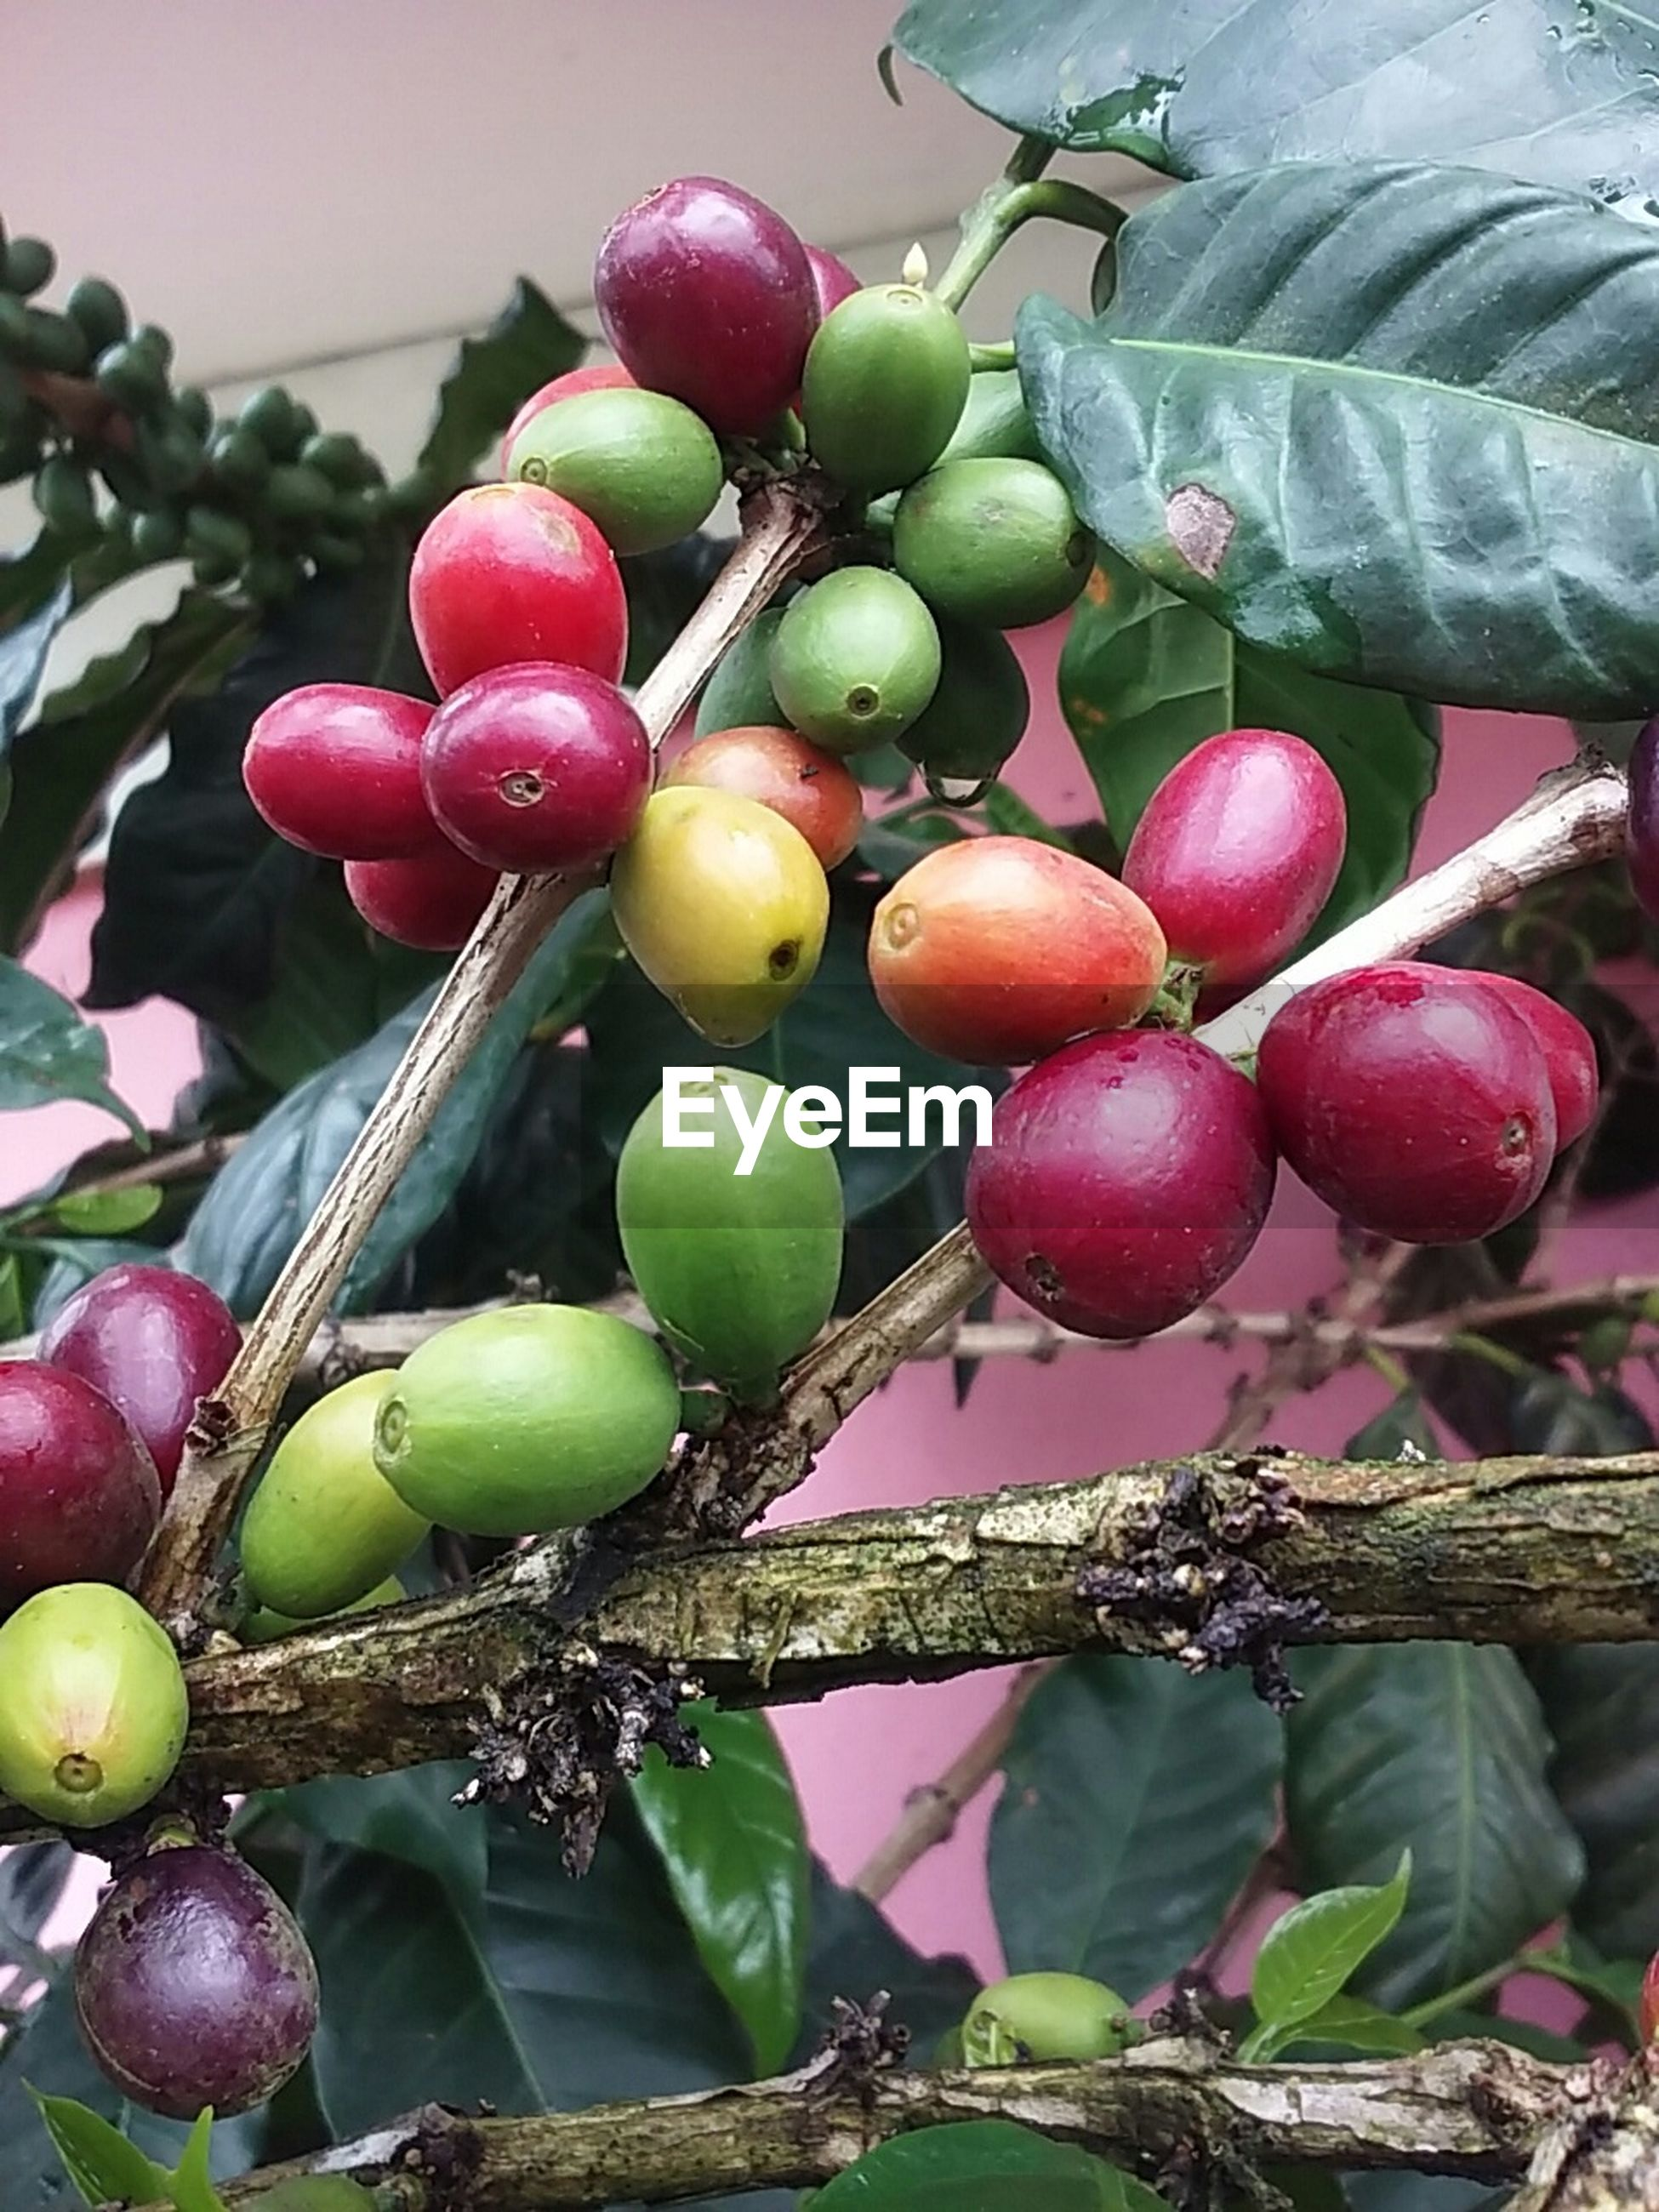 fruit, food and drink, food, healthy eating, freshness, growth, green color, leaf, hanging, ripe, grape, tree, branch, berry fruit, close-up, agriculture, plant, day, bunch, nature